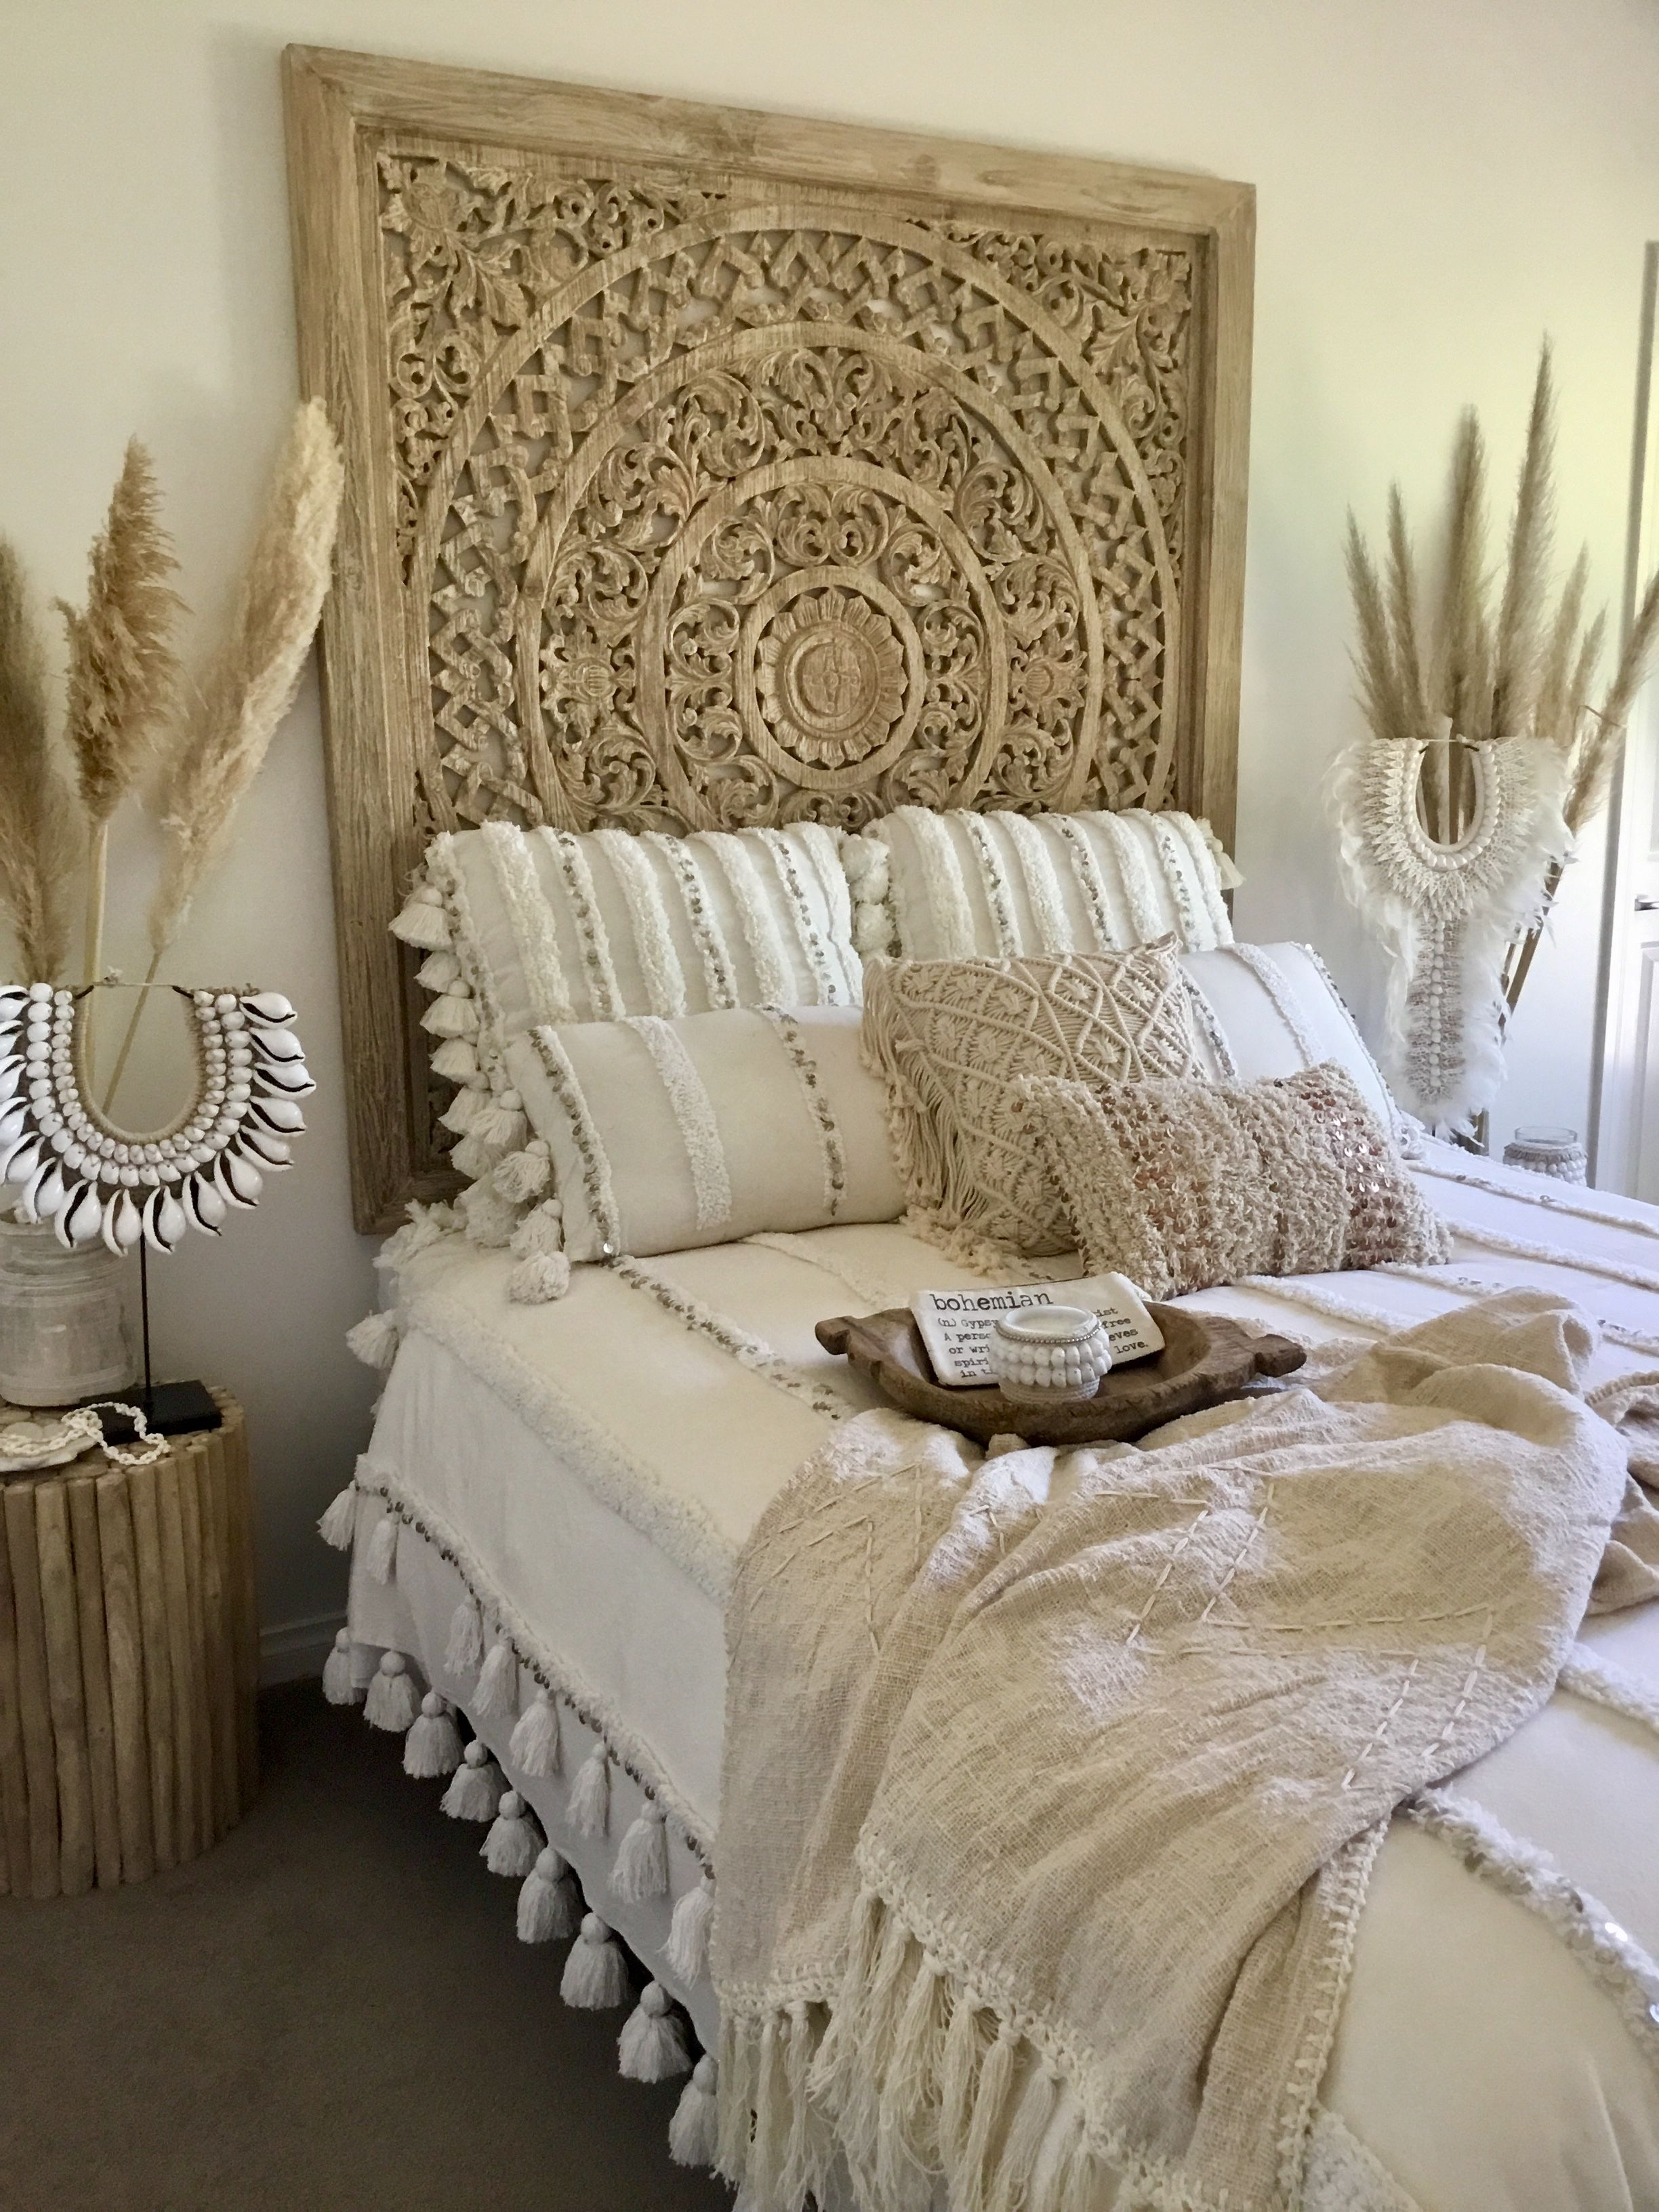 Boho bedroom styling by Tropical Interiors #bohobedroom